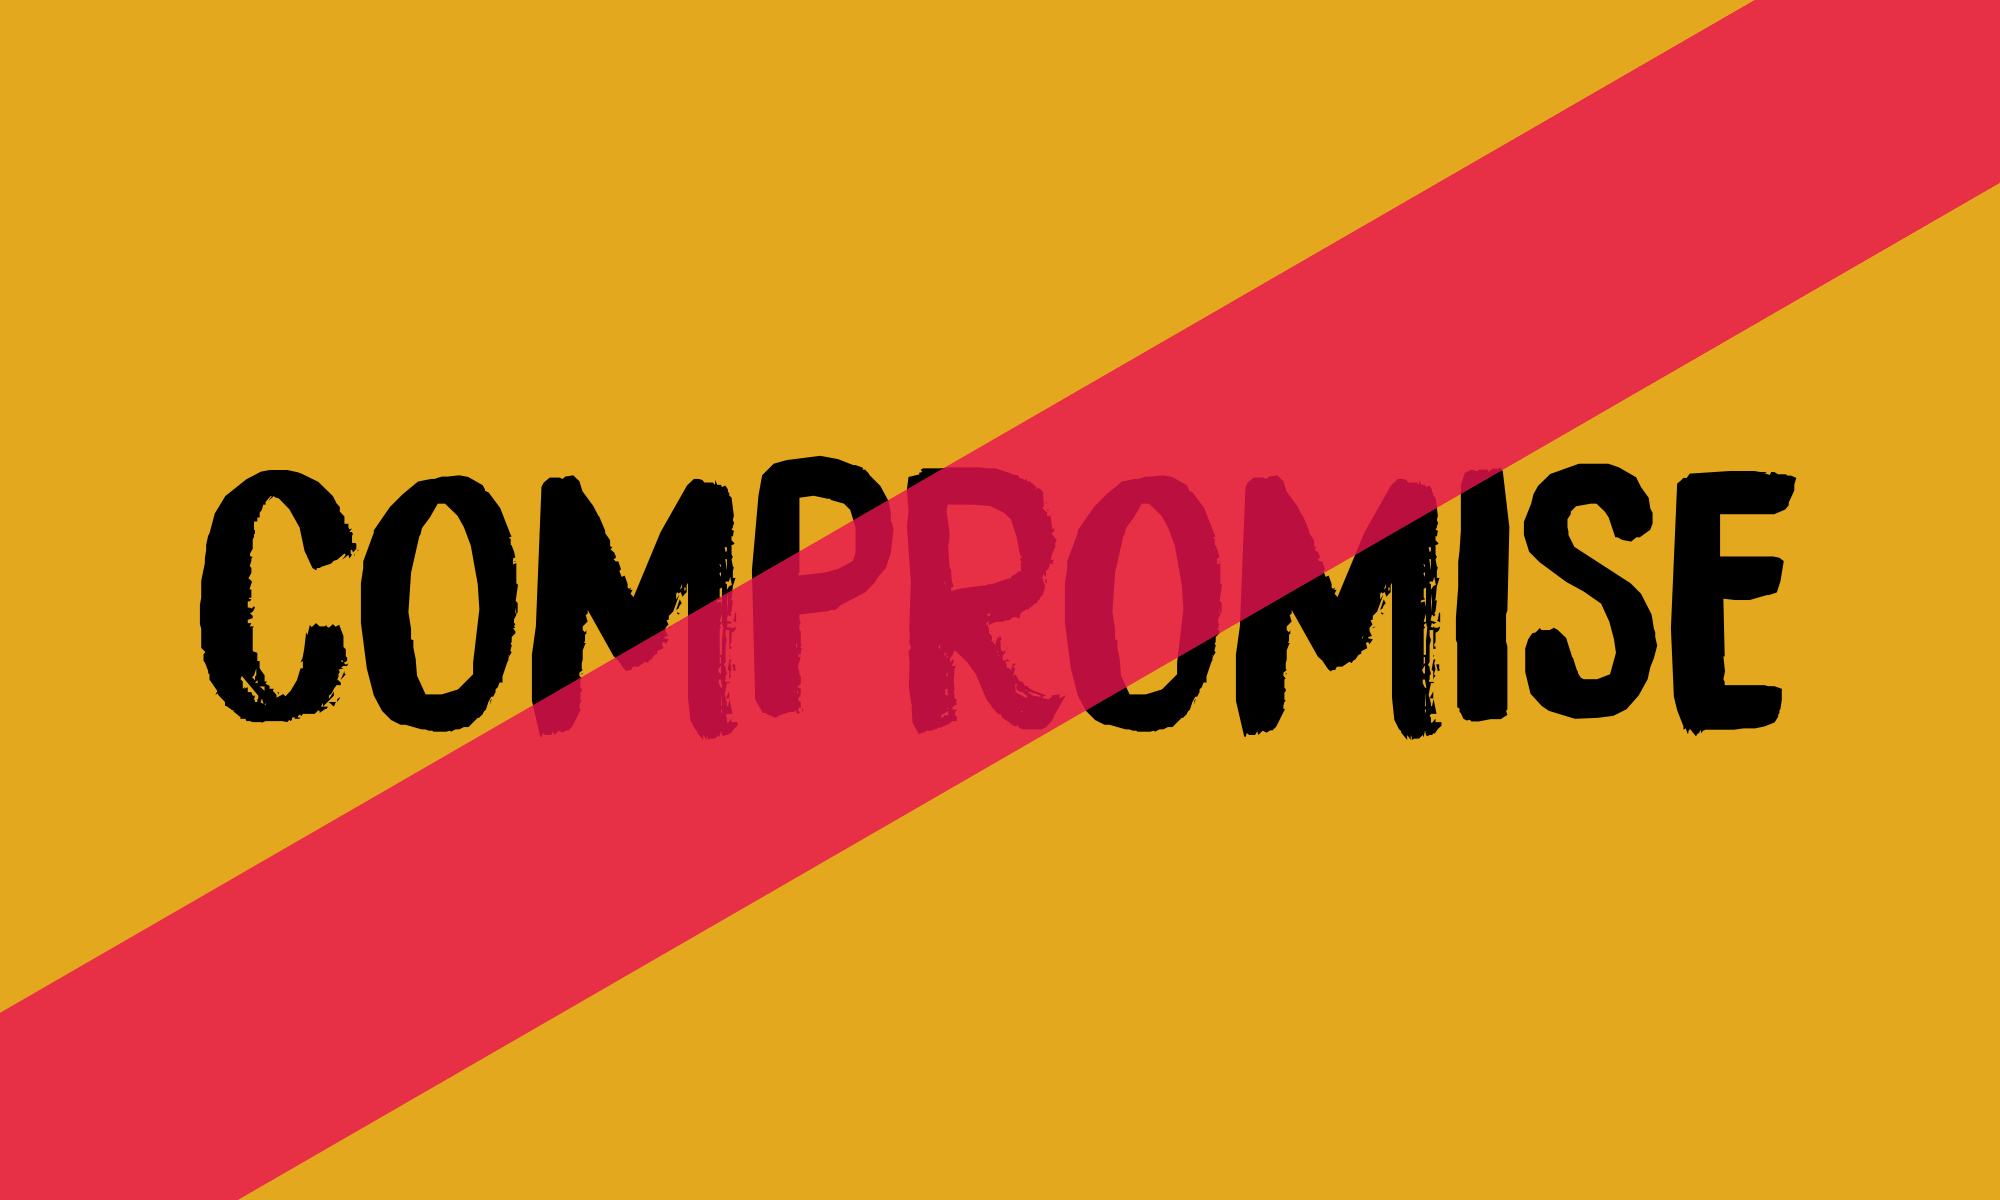 Fuck No, I STILL Will Not Compromise And Neither Should You!